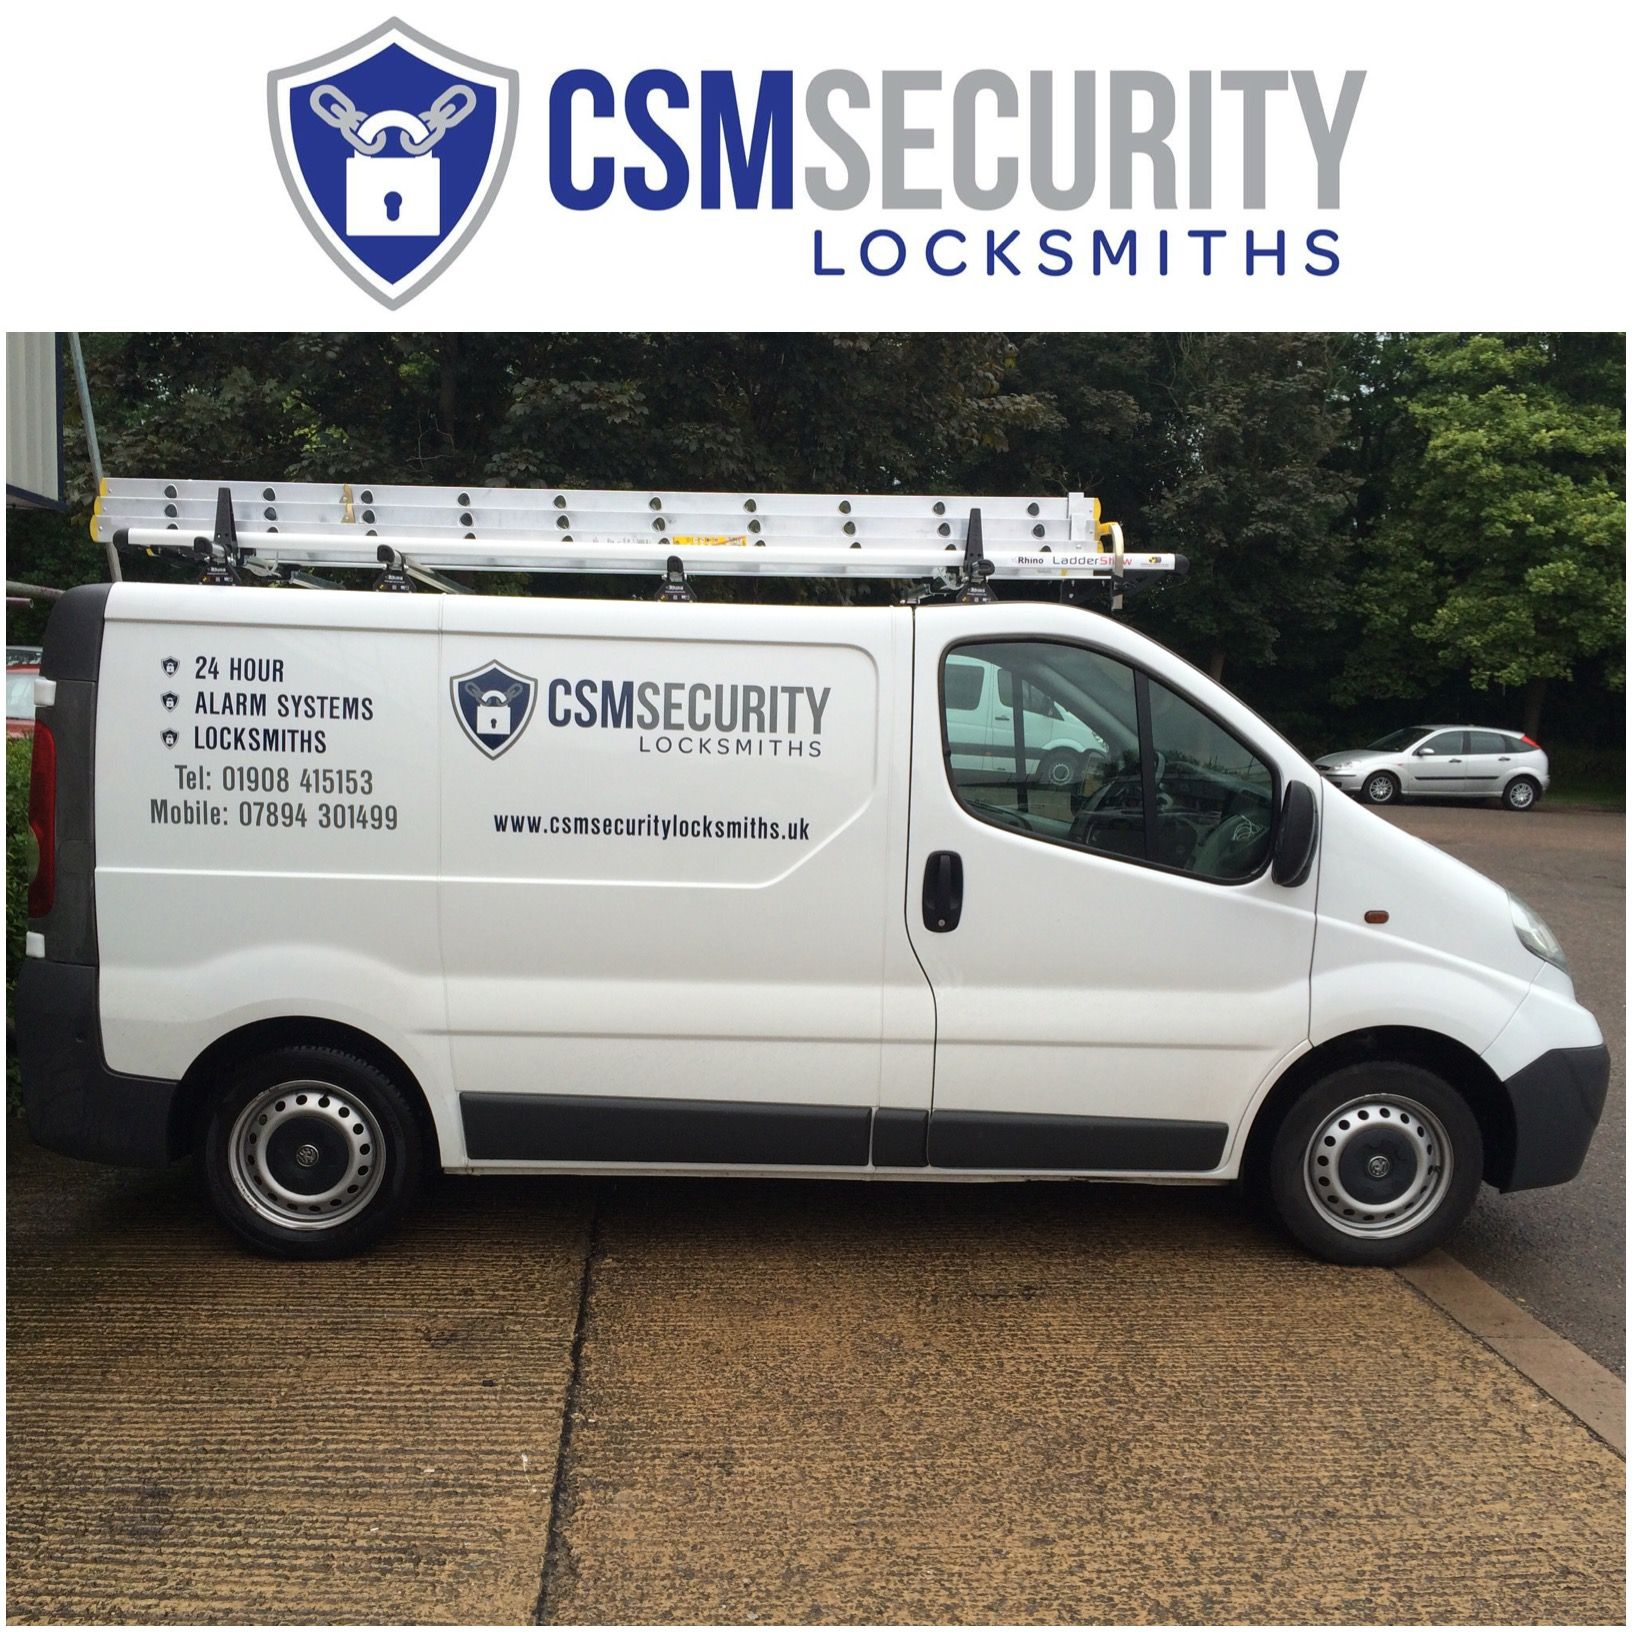 Need a locksmith in miltonkeynes on bankholidaymonday call now